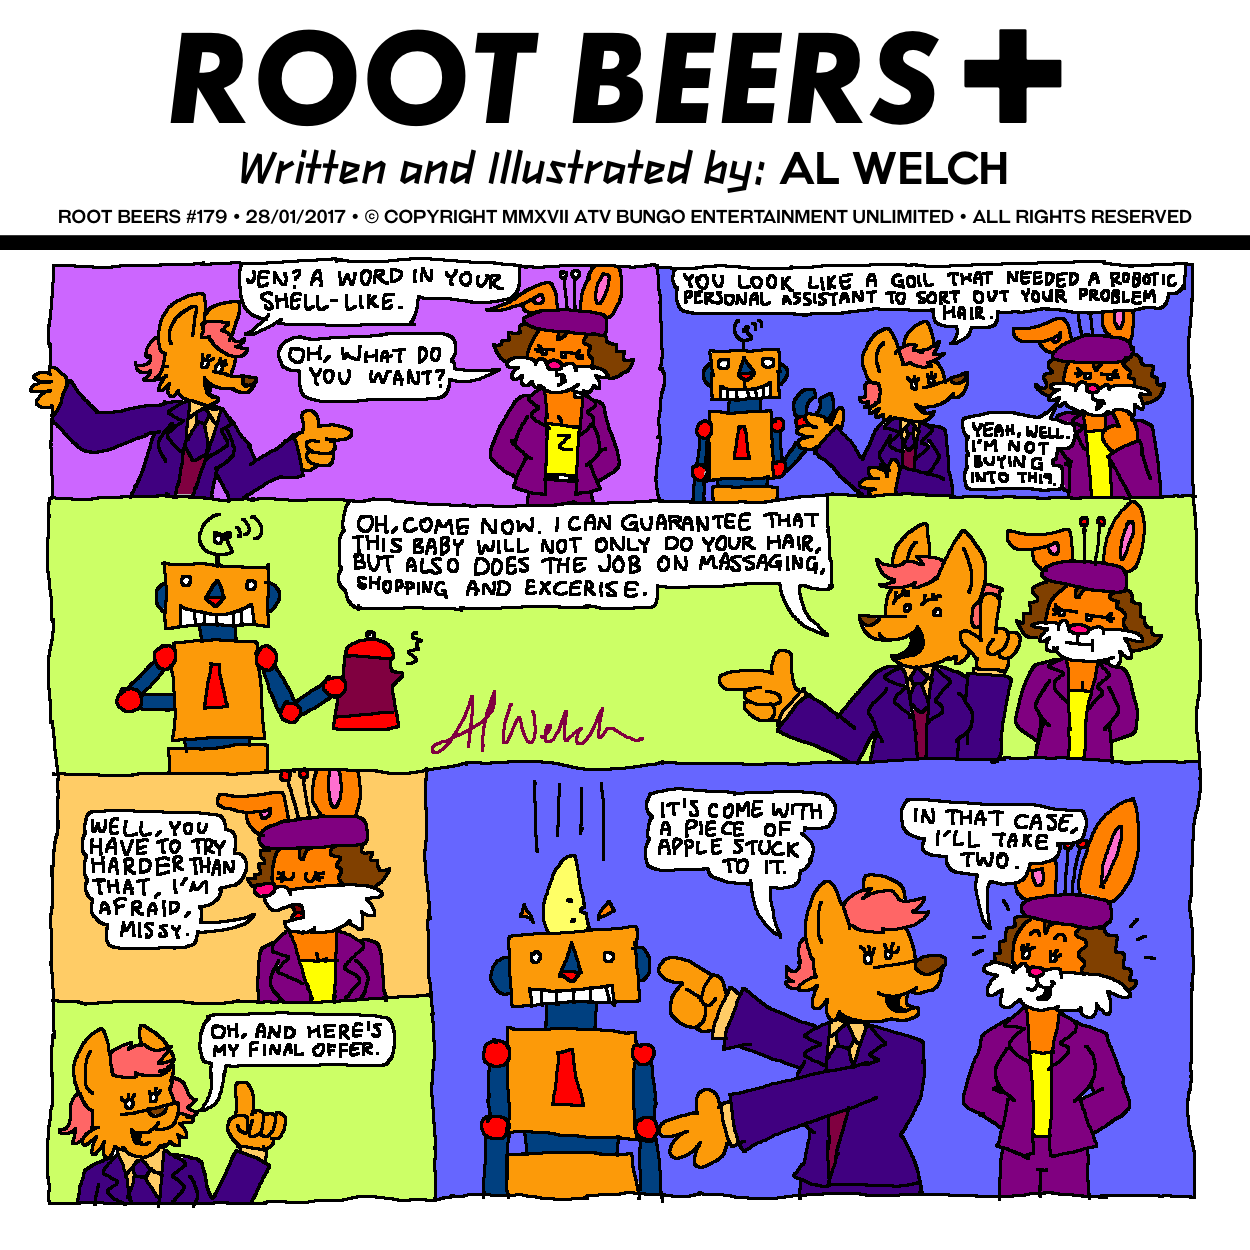 Root Beers #179: The Future's Apple?